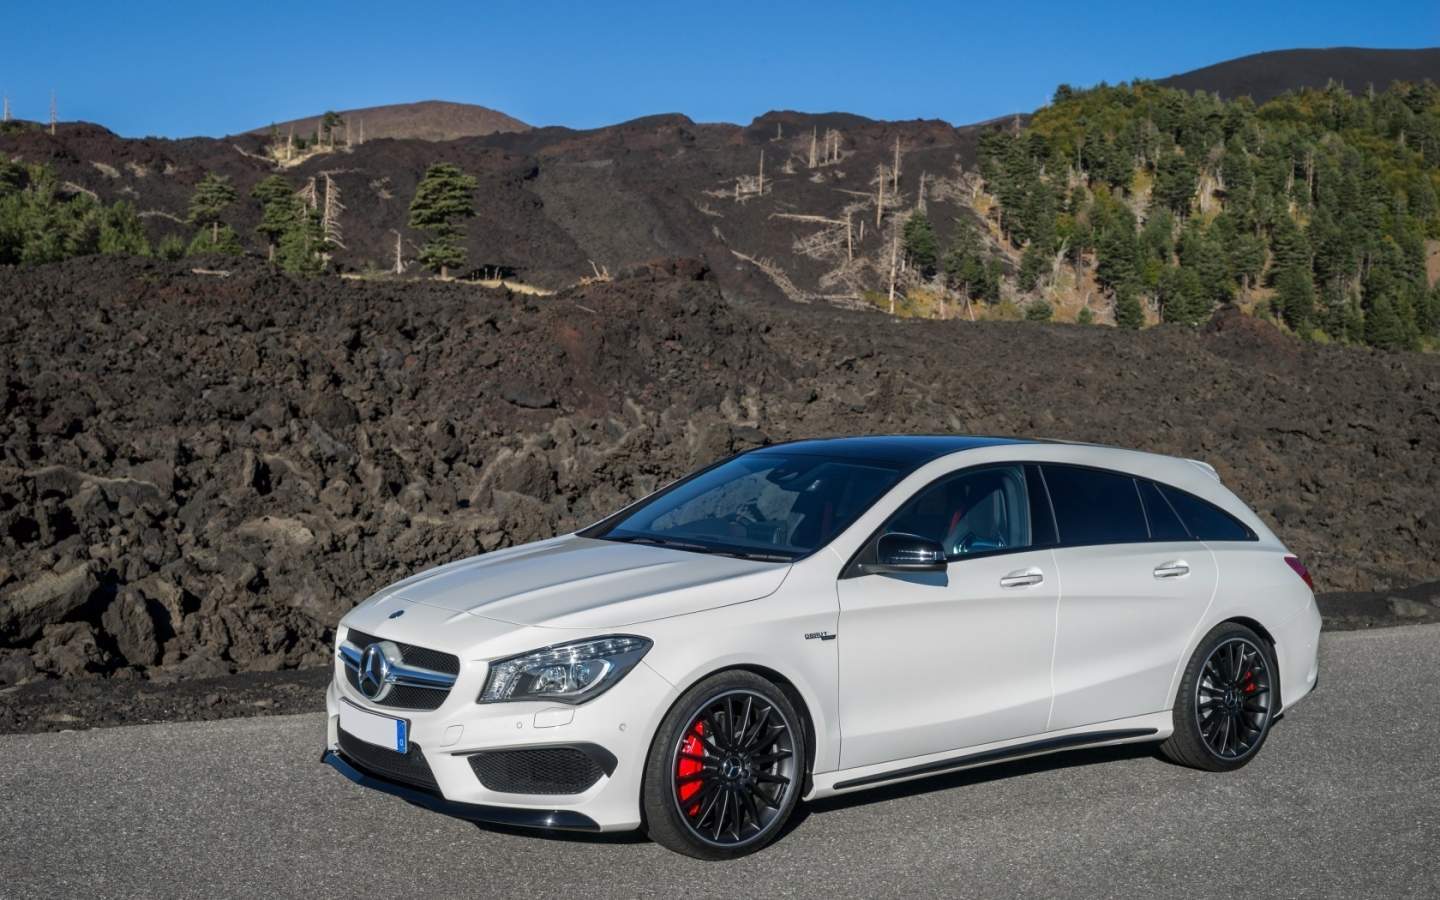 Mercedes Benz CLA 45 AMG for 1440 x 900 widescreen resolution